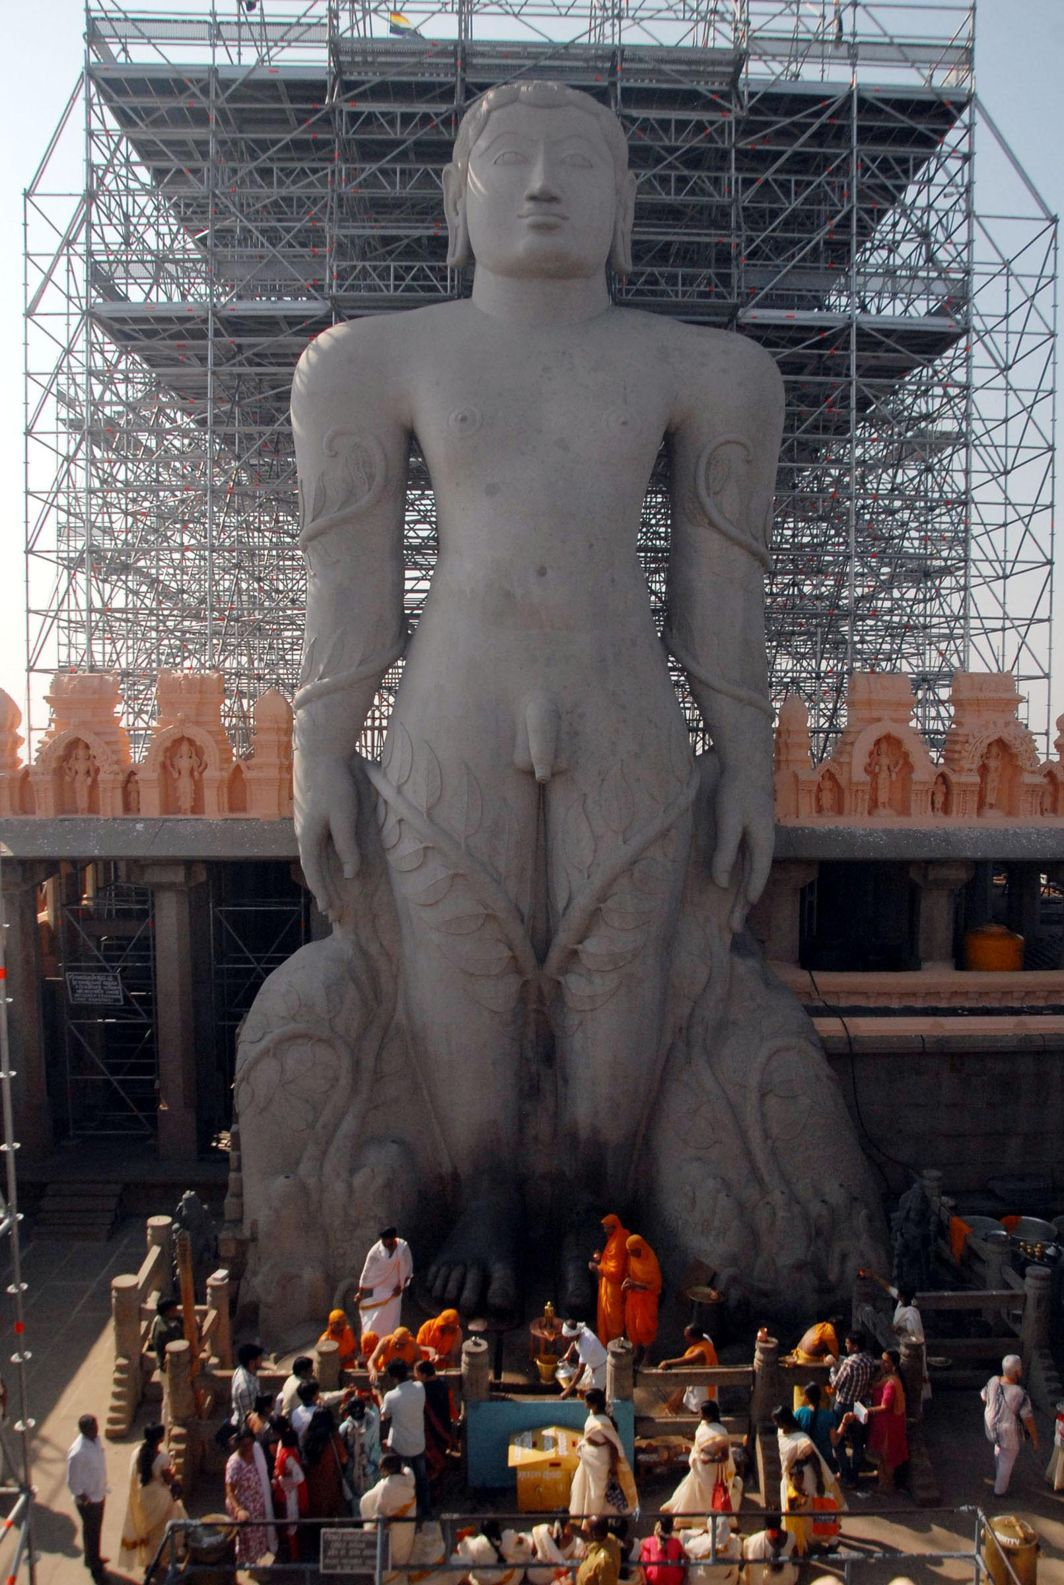 STANDING FOR A MILLENNIUM AND MORE: Preparations in full swing for the Mahamastakabhisheka of giant monolithic statue of Lord Gomteshwara (Bahubali) from February 7 to 26 on Vidyagiri Hill at Shravanabelagola in Hassan district of Karnataka, the 57-foot free-standing statue being the world's tallest, UNI